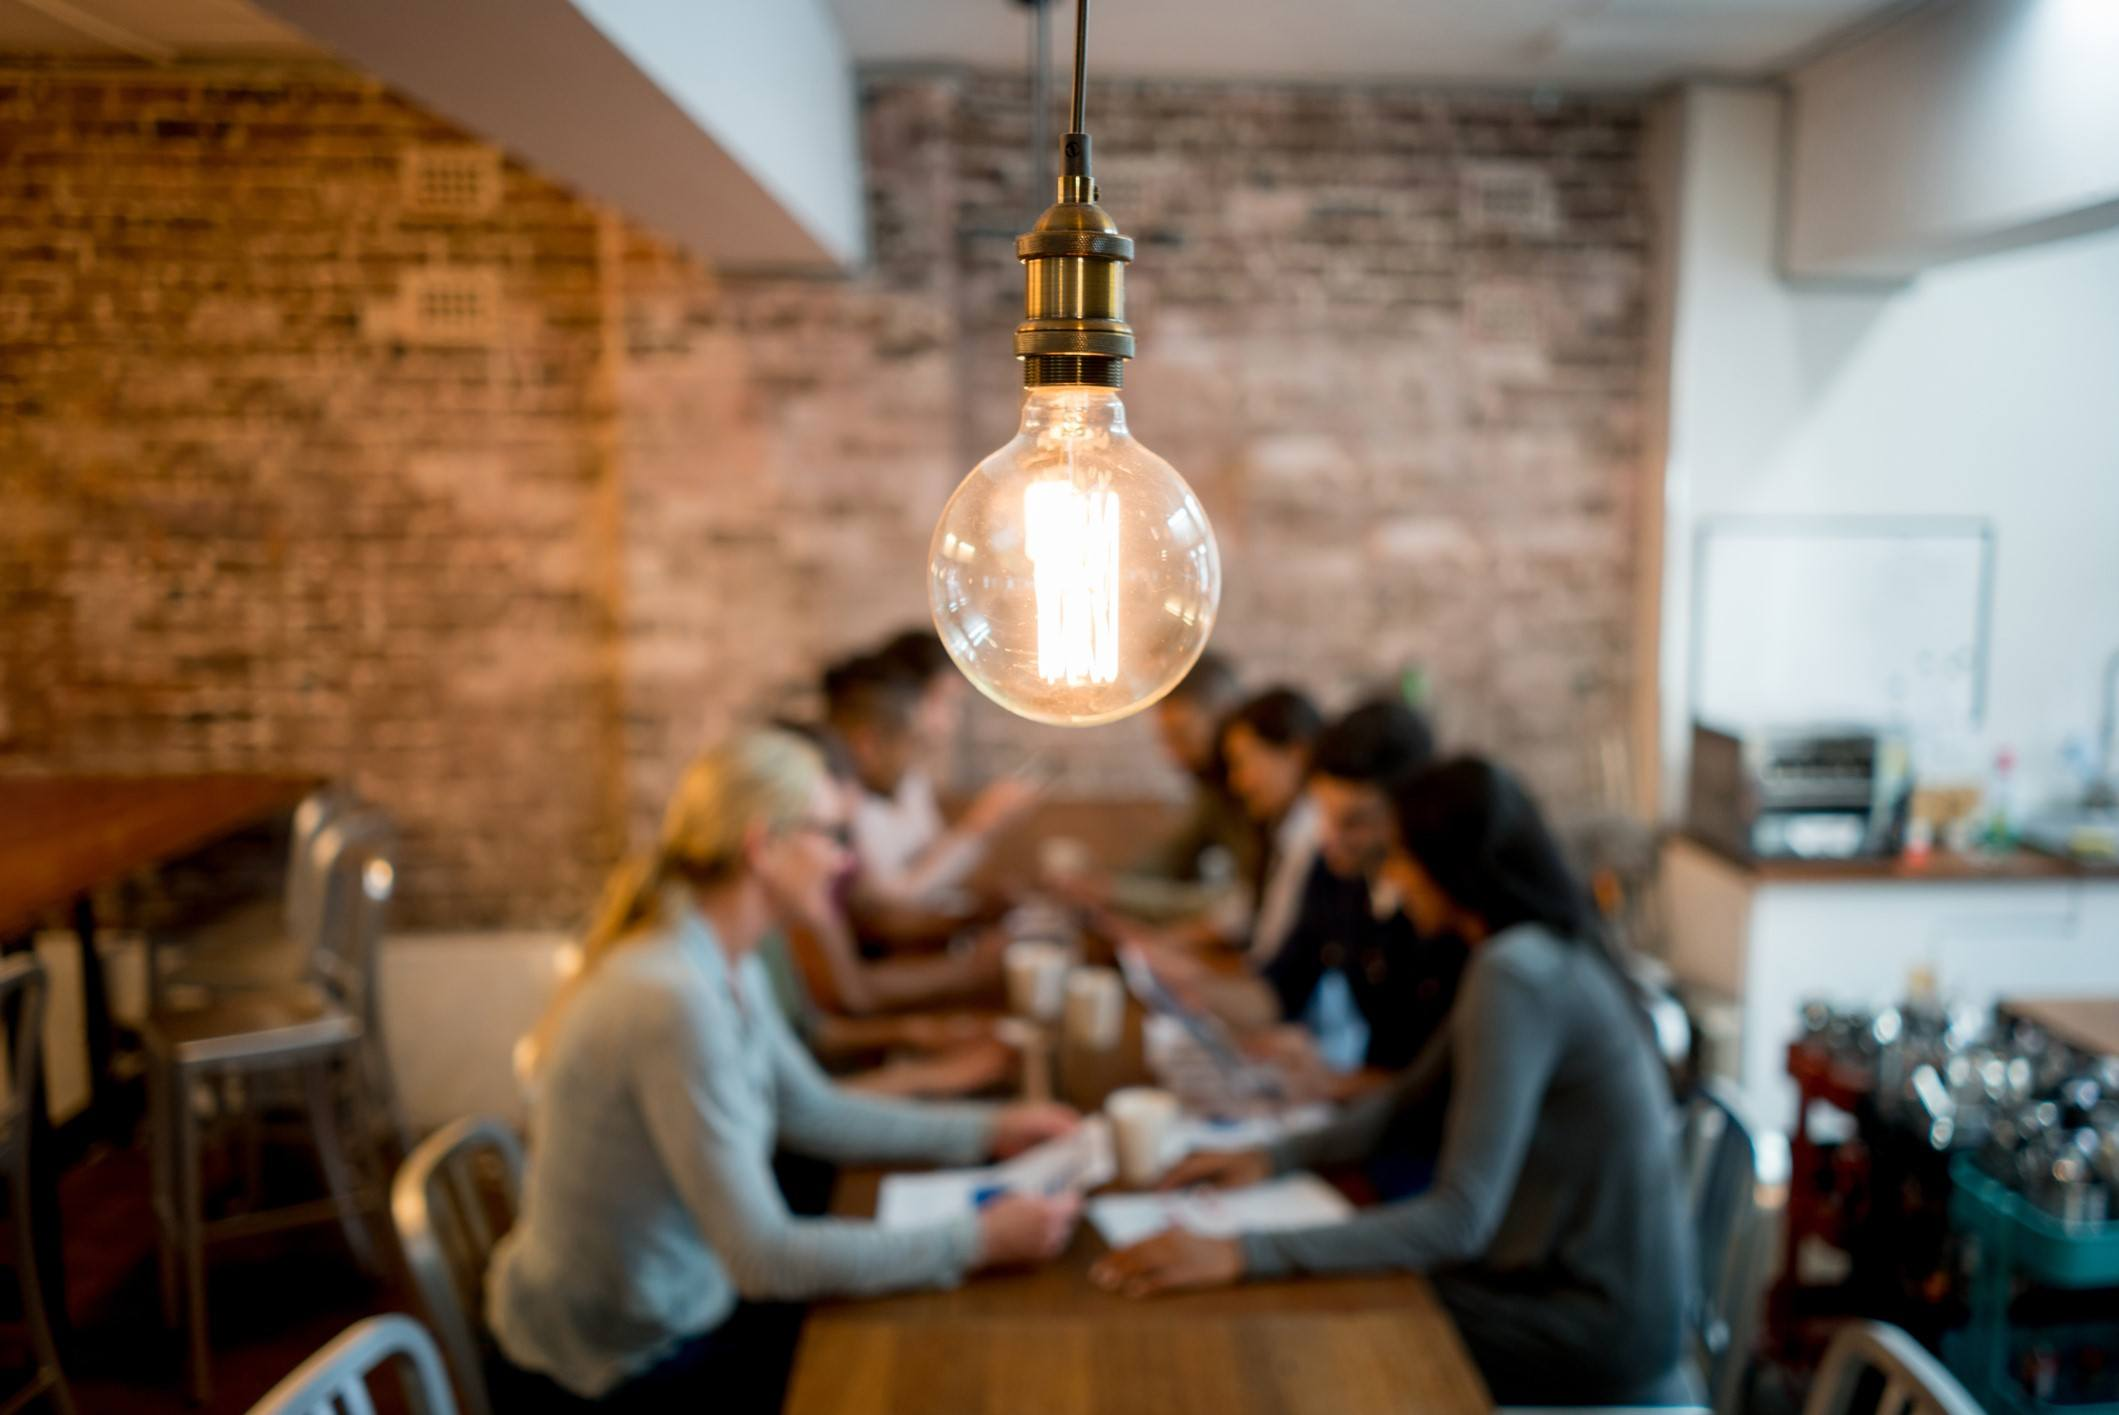 A Light Bulb Above A Table Of People Signifying Good Ideas Happen When We Work Together